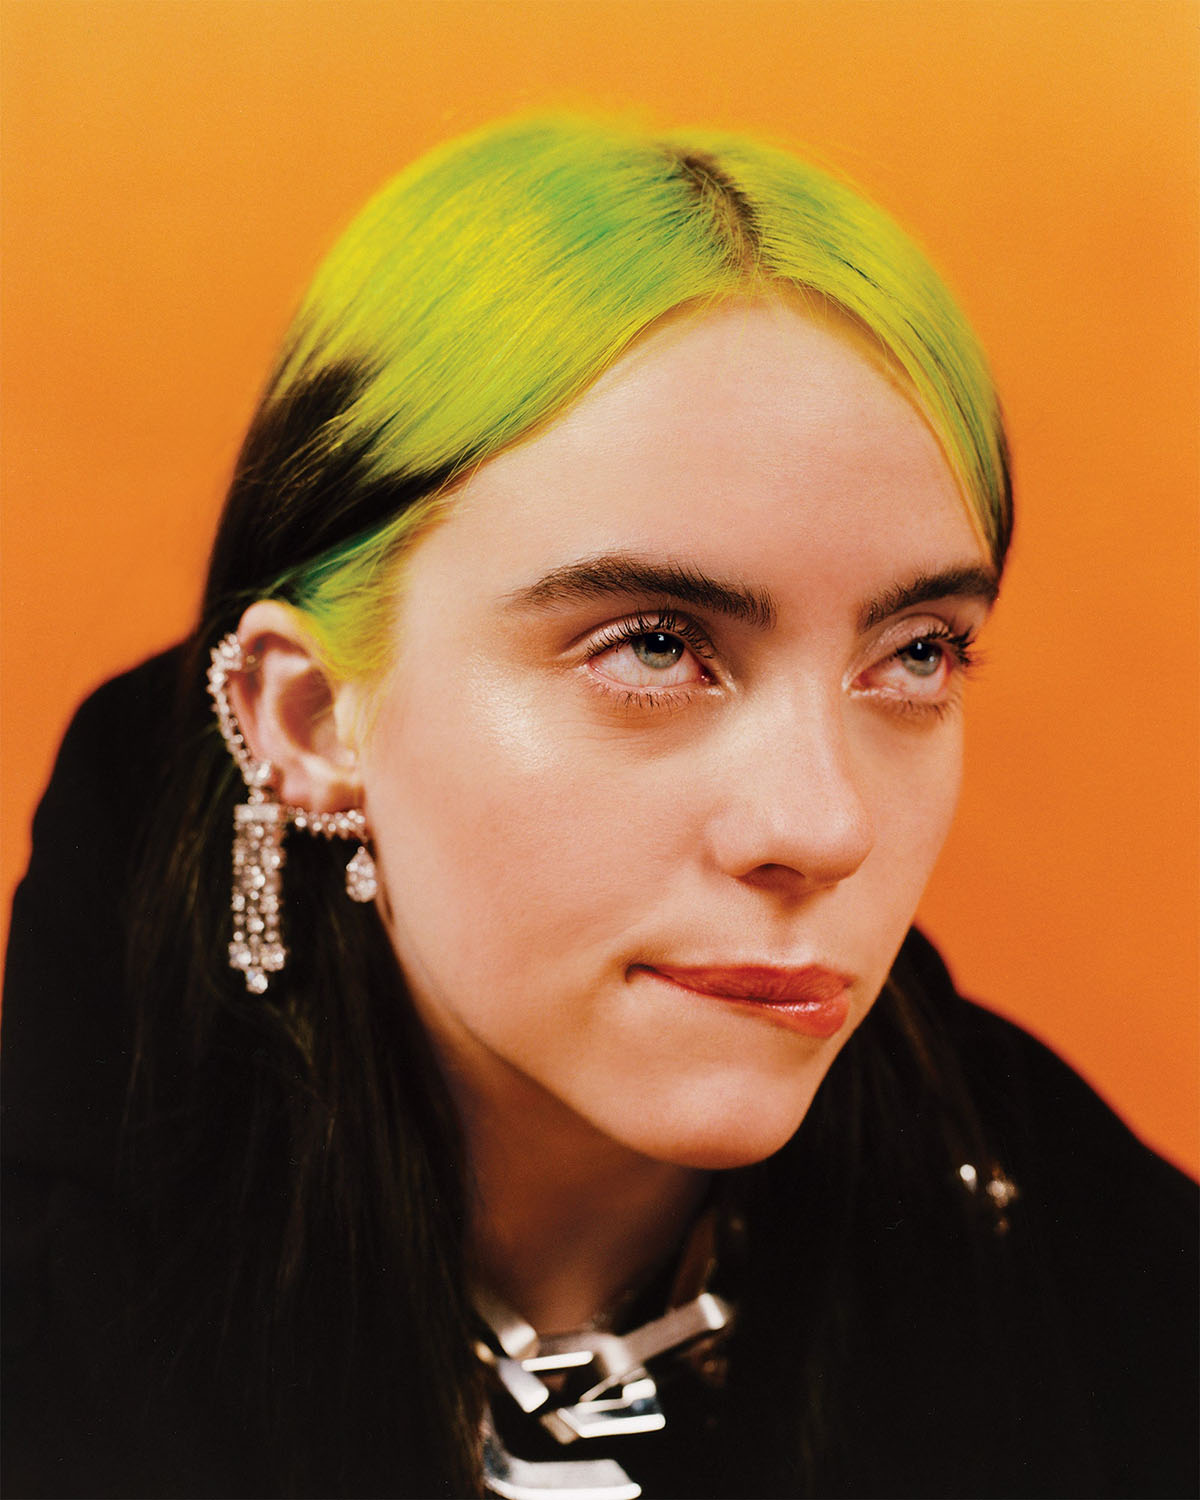 Billie Eilish covers Vanity Fair March 2021 by Quil Lemons